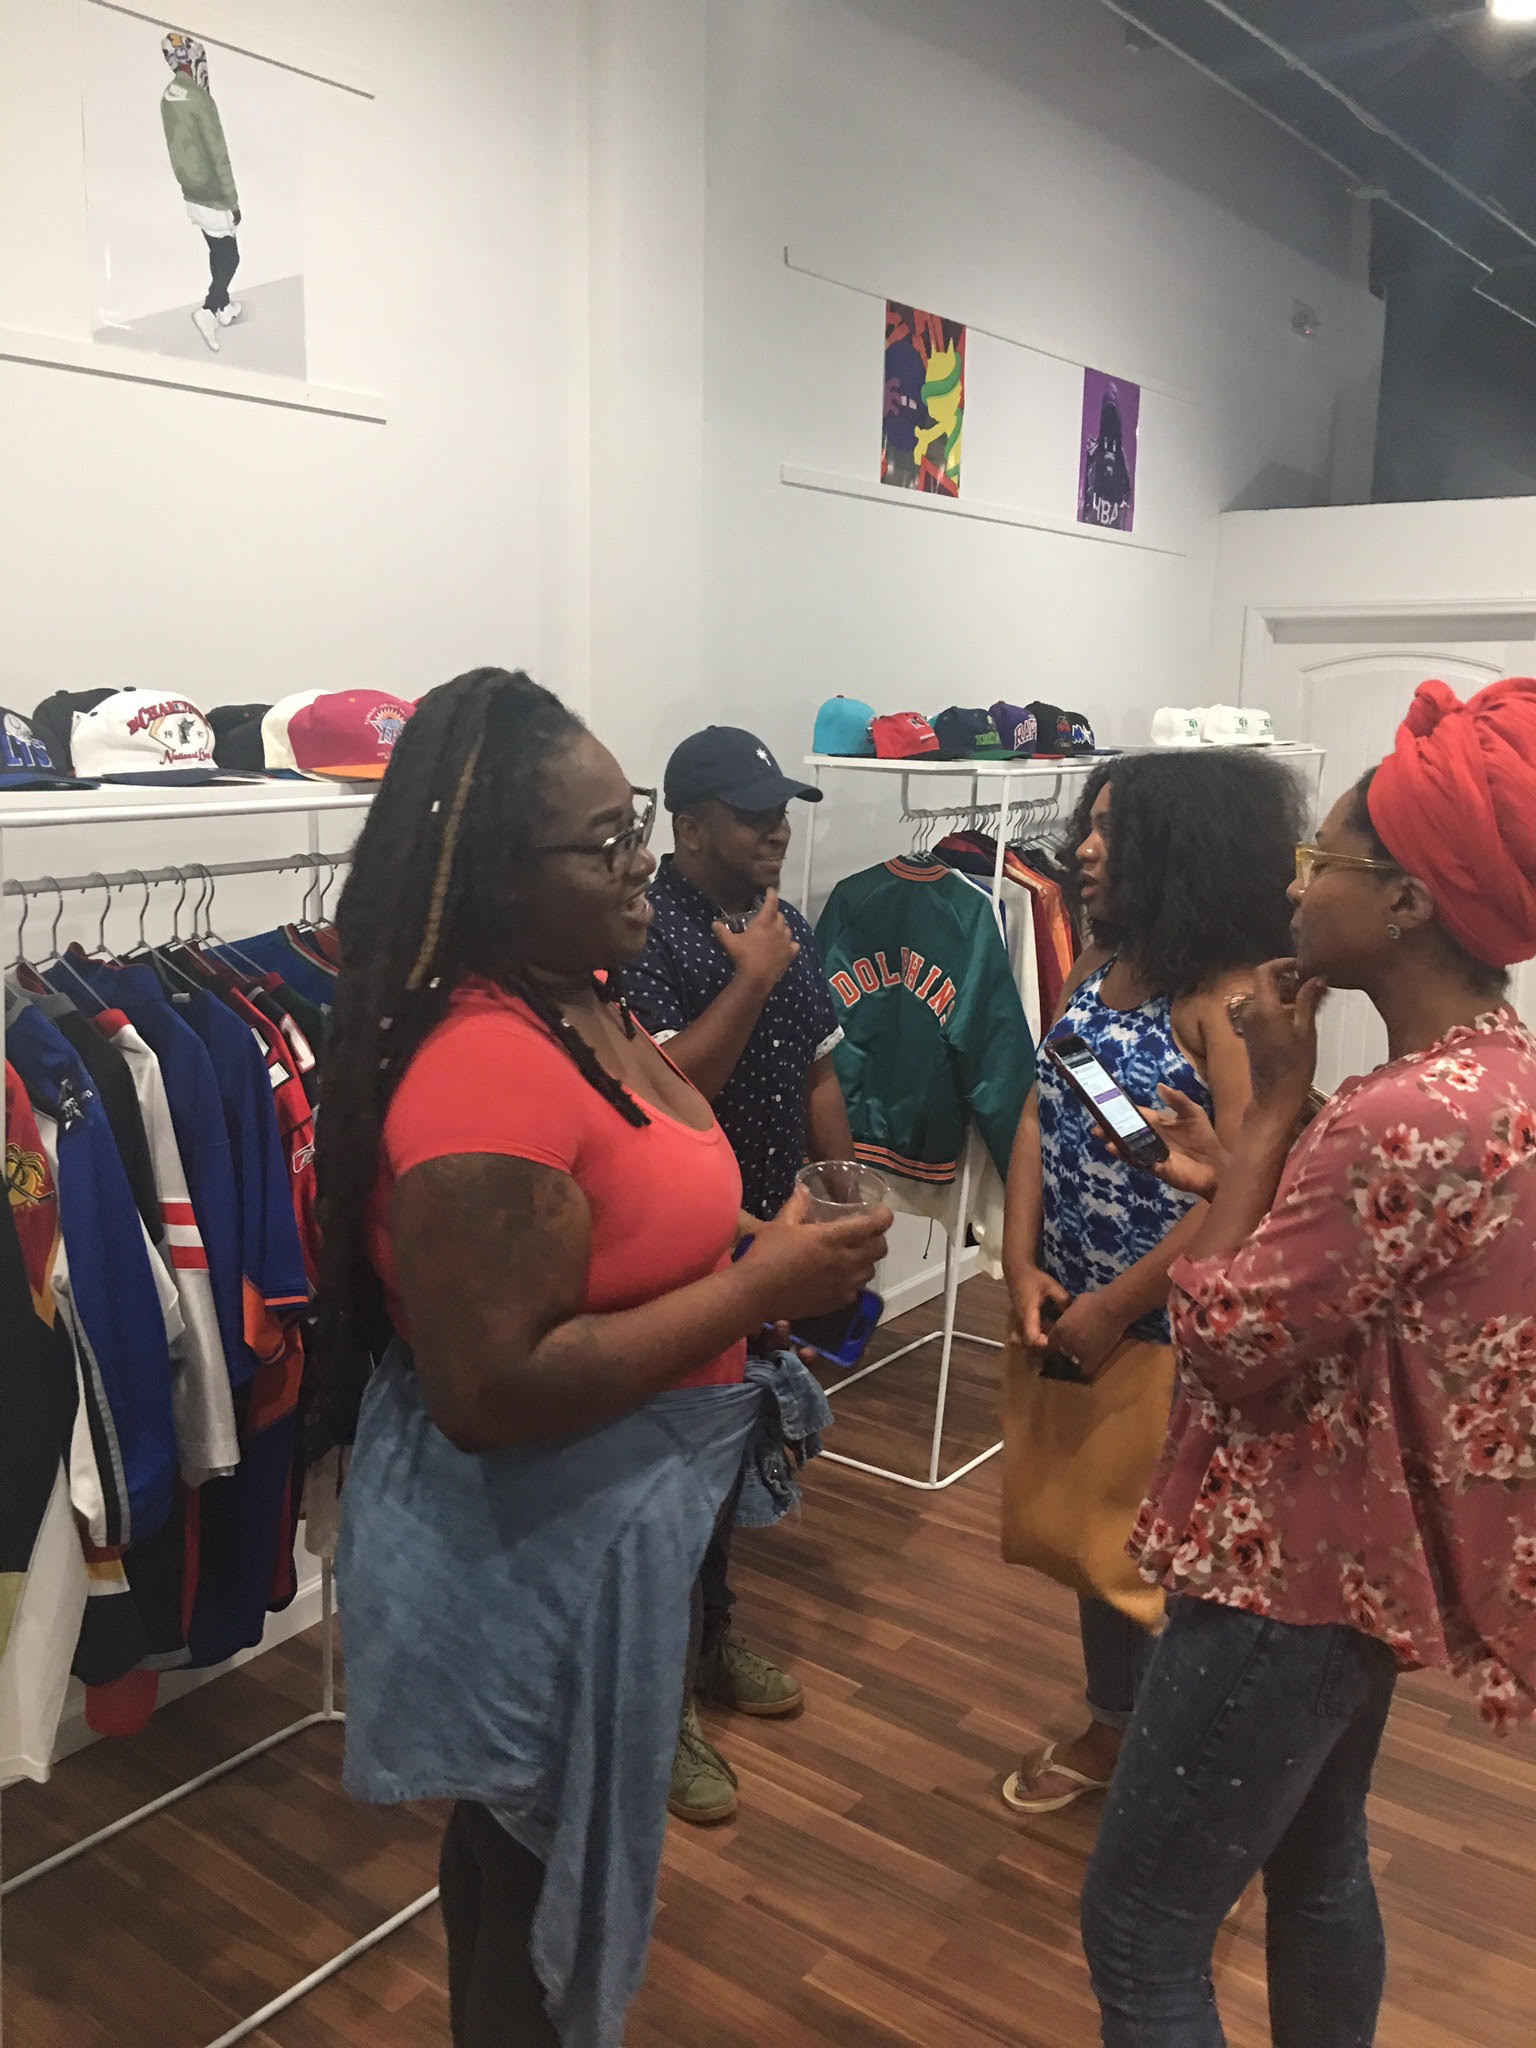 4:44 Listening Party at the Estate Creative Agency in Raleigh, NC on Friday night, June 30th